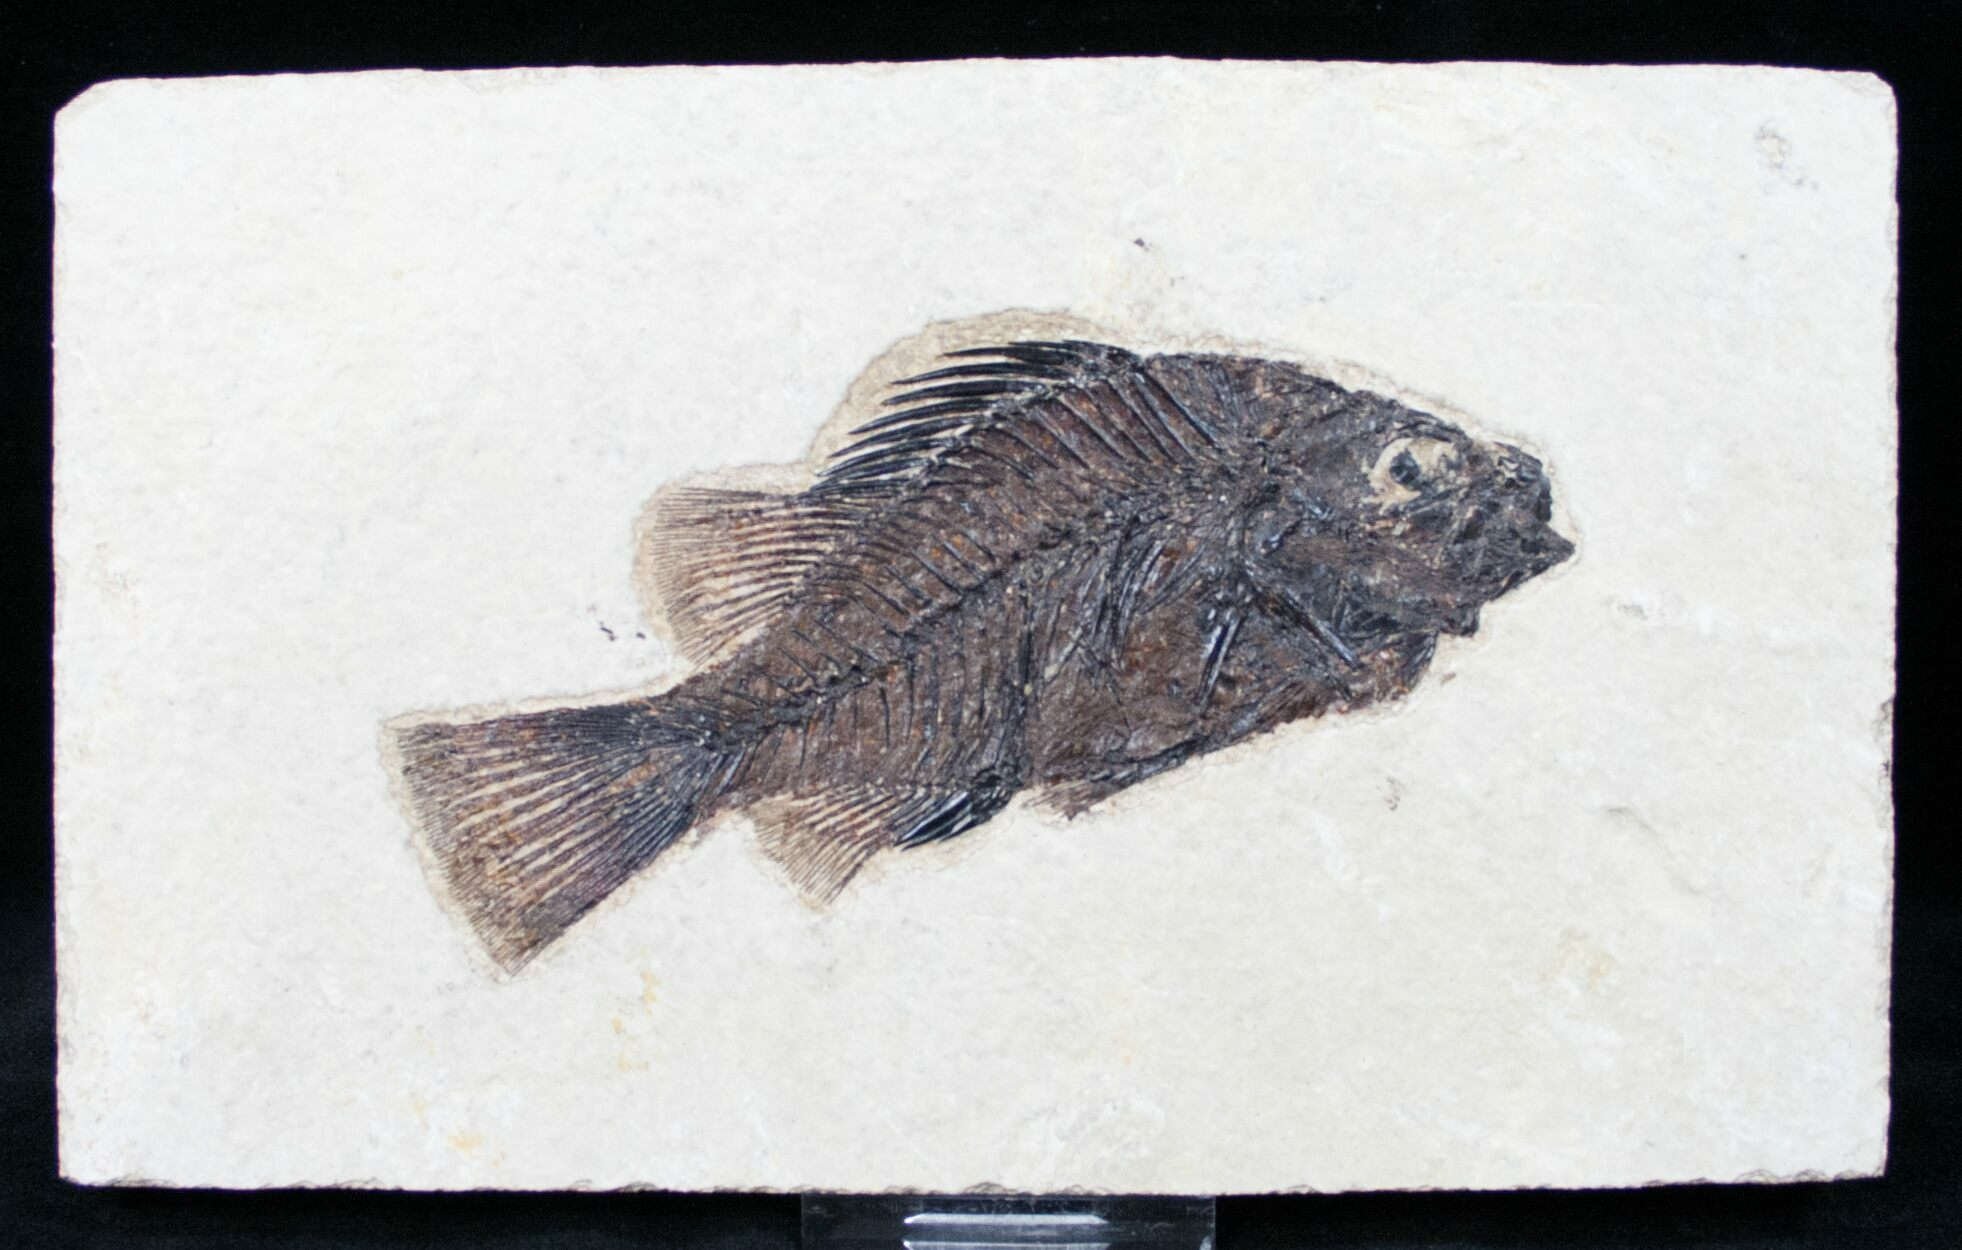 Excellent 4 2 priscacara fossil fish wyoming for sale for Fish fossils for sale